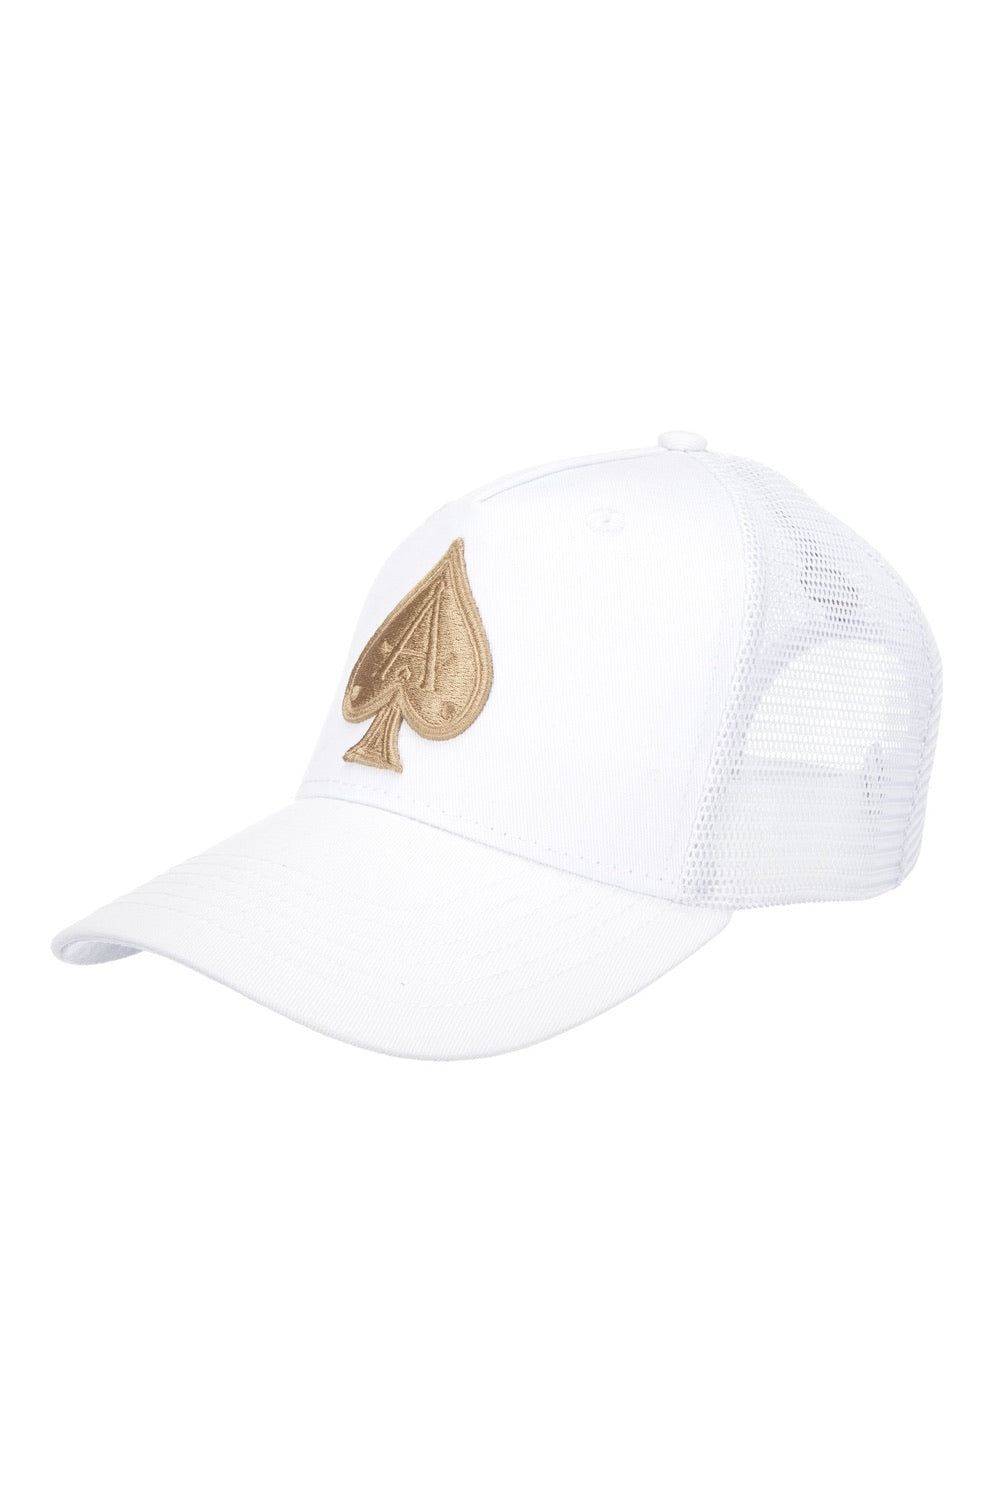 Ace Vestiti Mesh Trucker Cap - White/Gold - 1